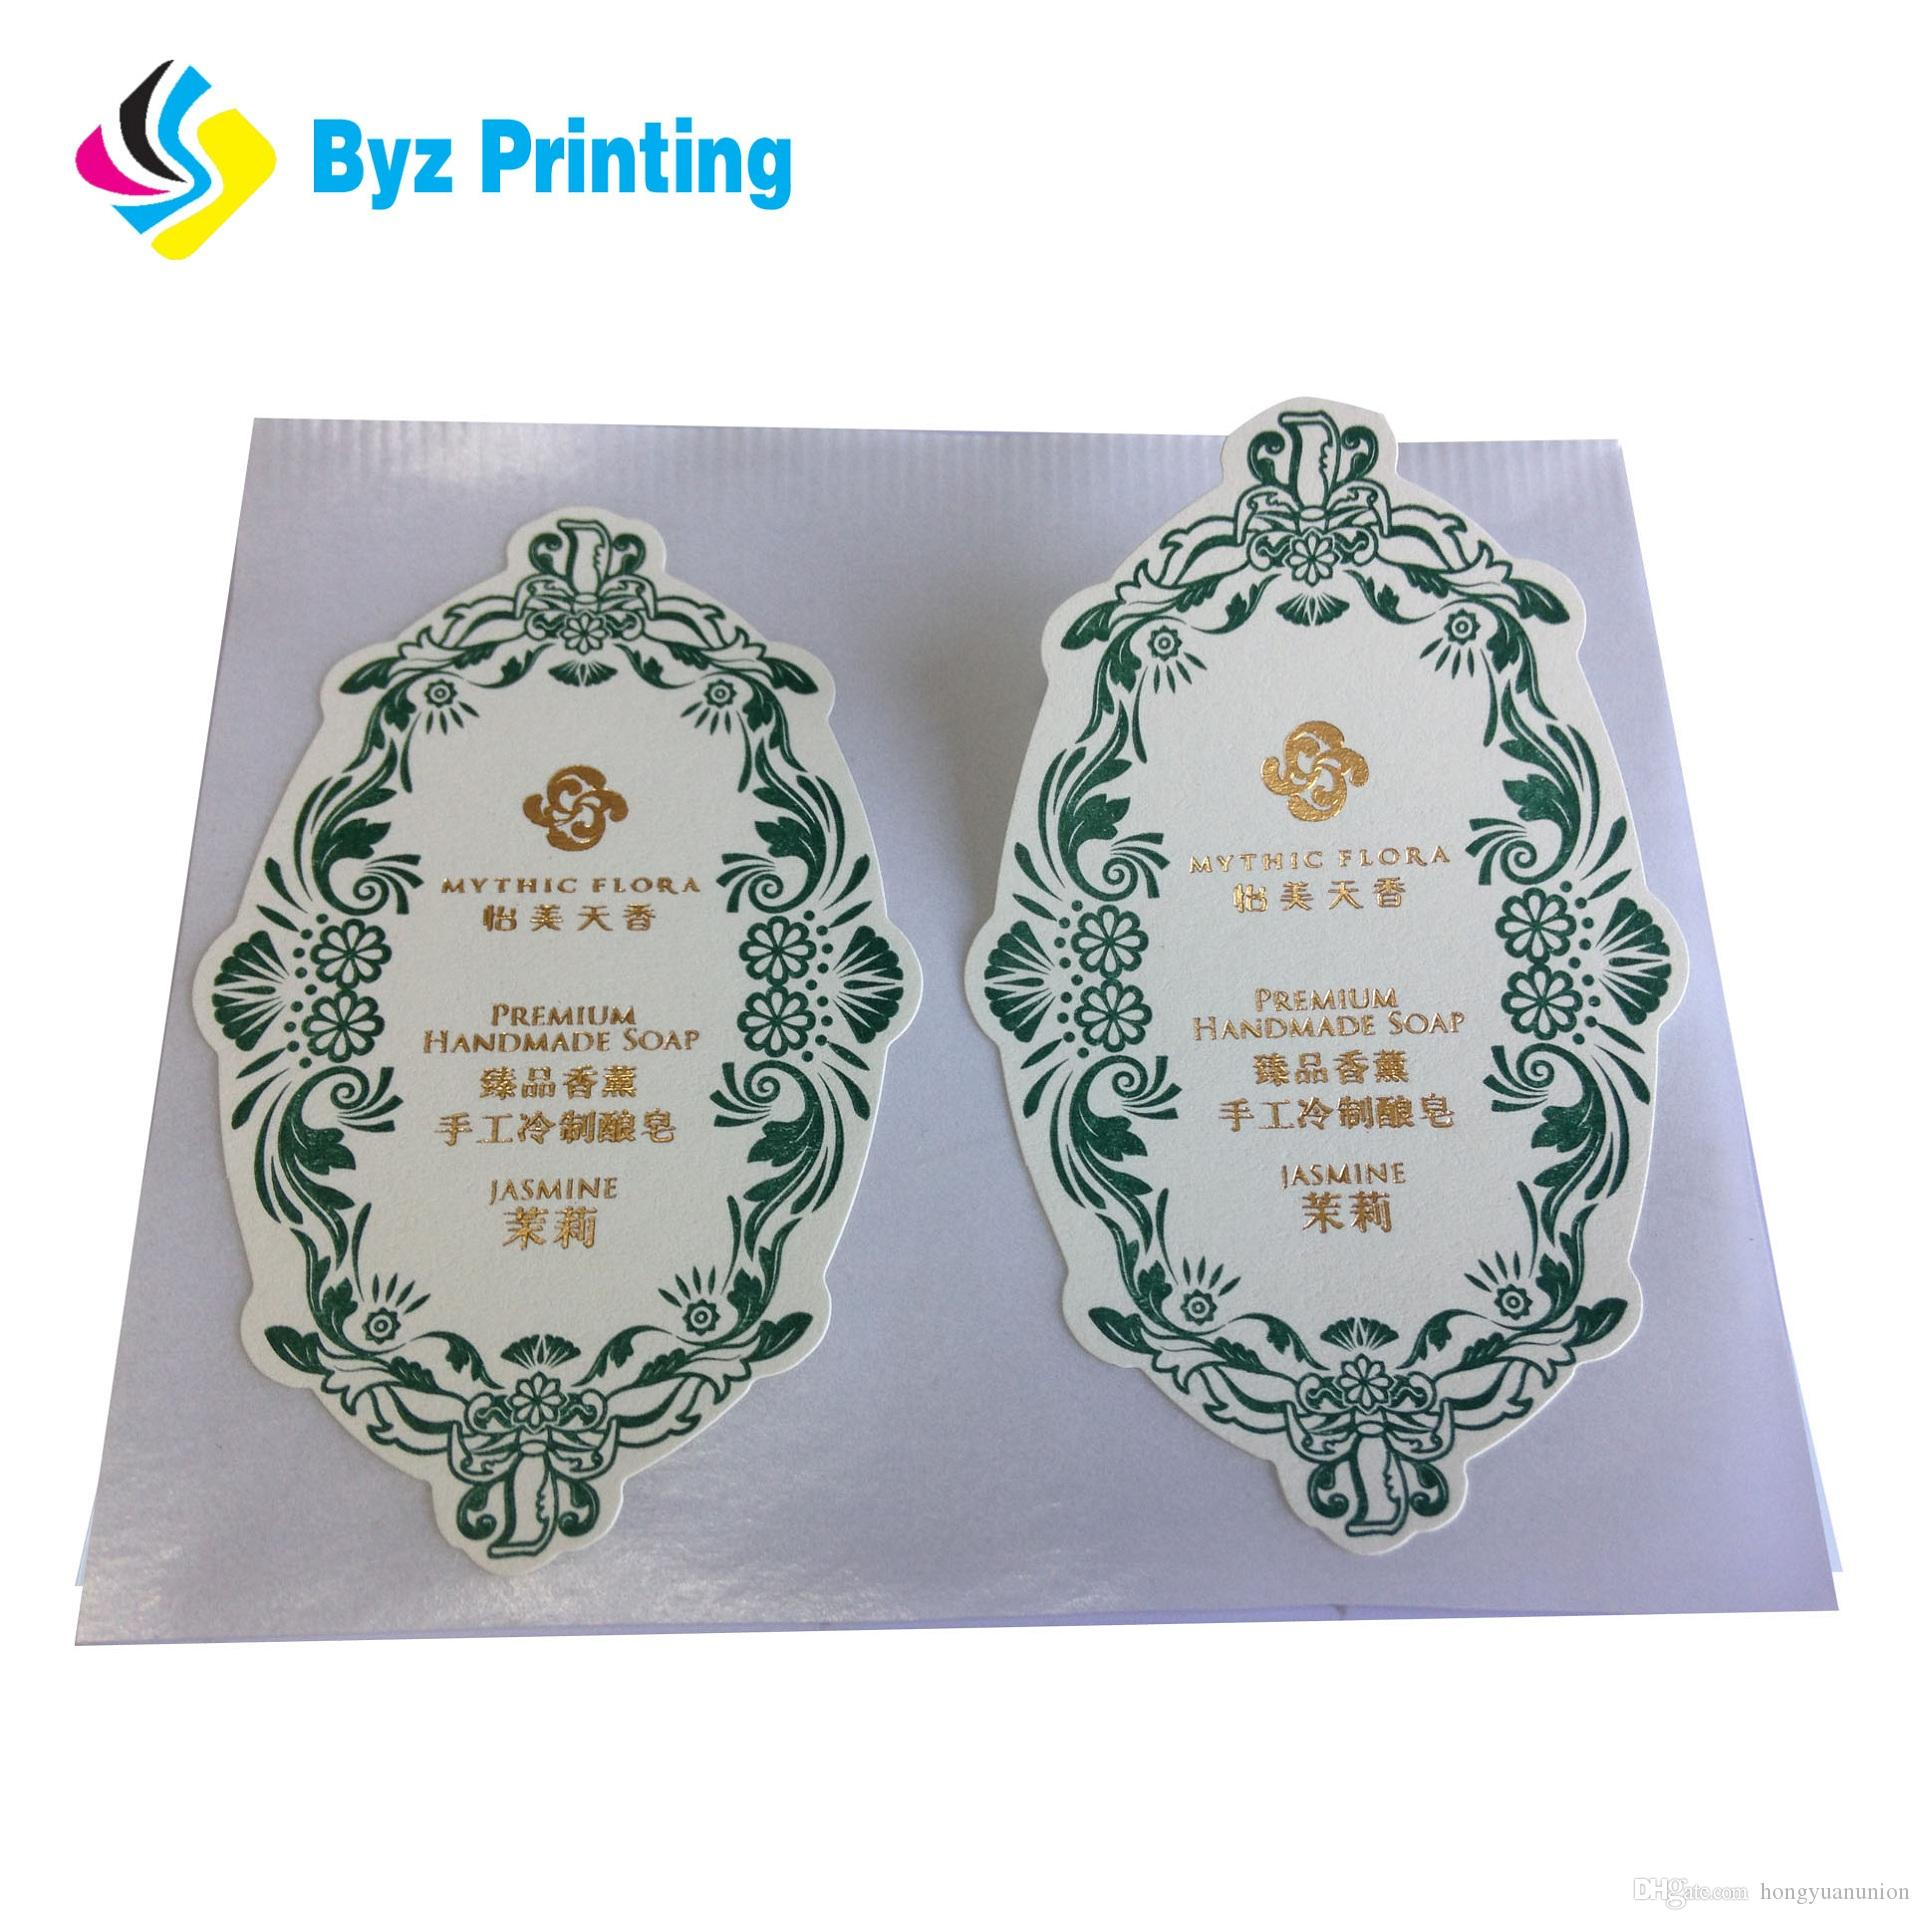 hight resolution of 2019 accept small quantity label printing custom adhesive label printing service to print labels for jams from hongyuanunion 0 04 dhgate com